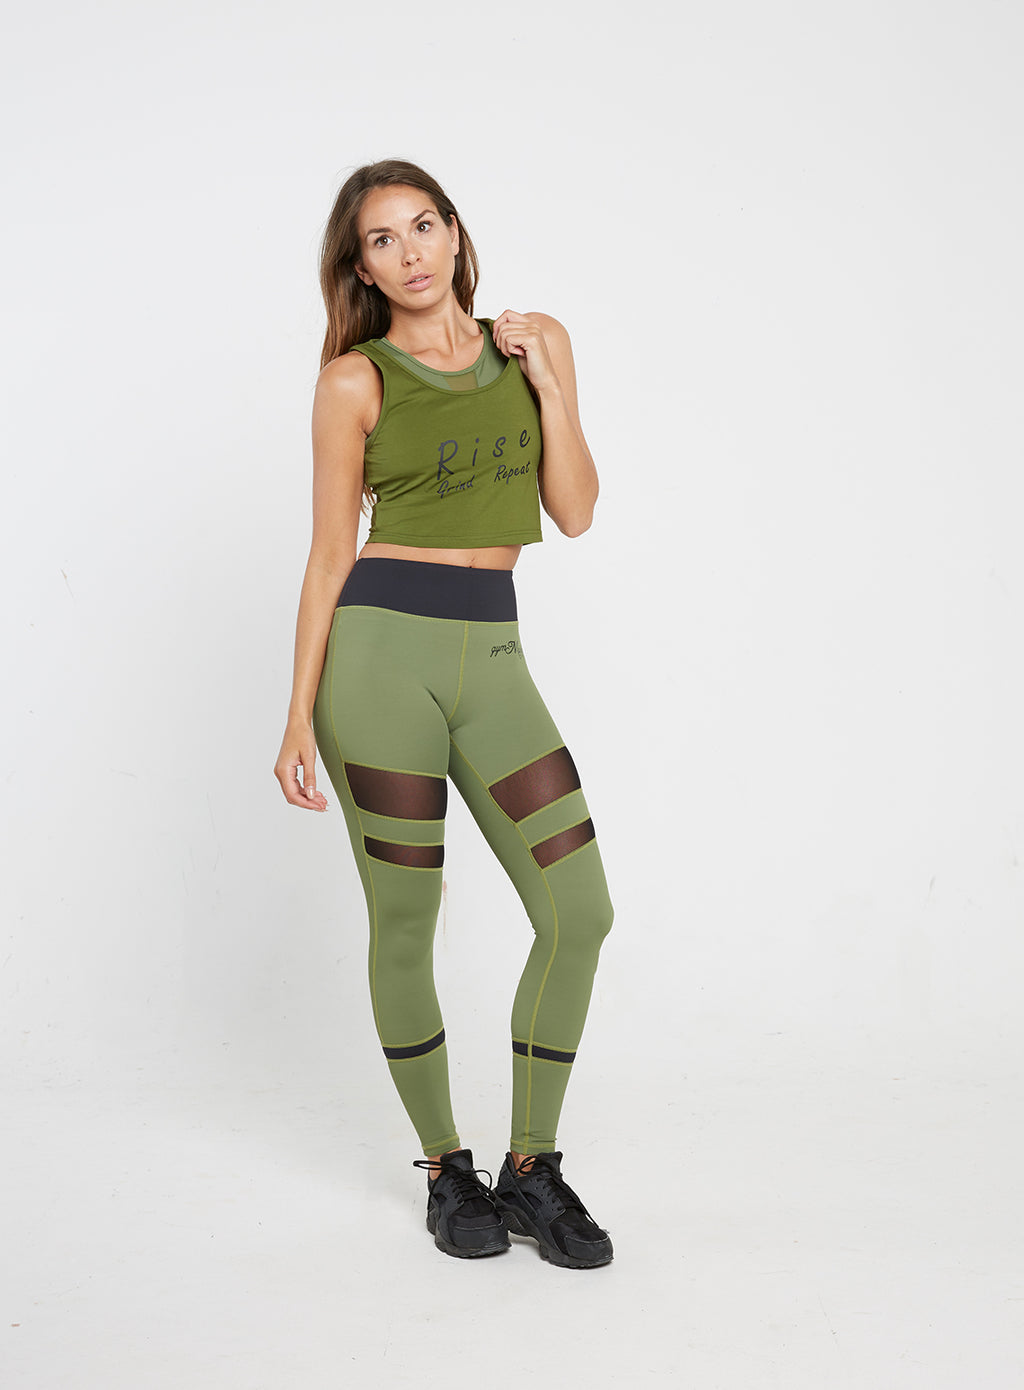 Gym Monkee - Ladies Khaki Slogan Crop FRONT FULL